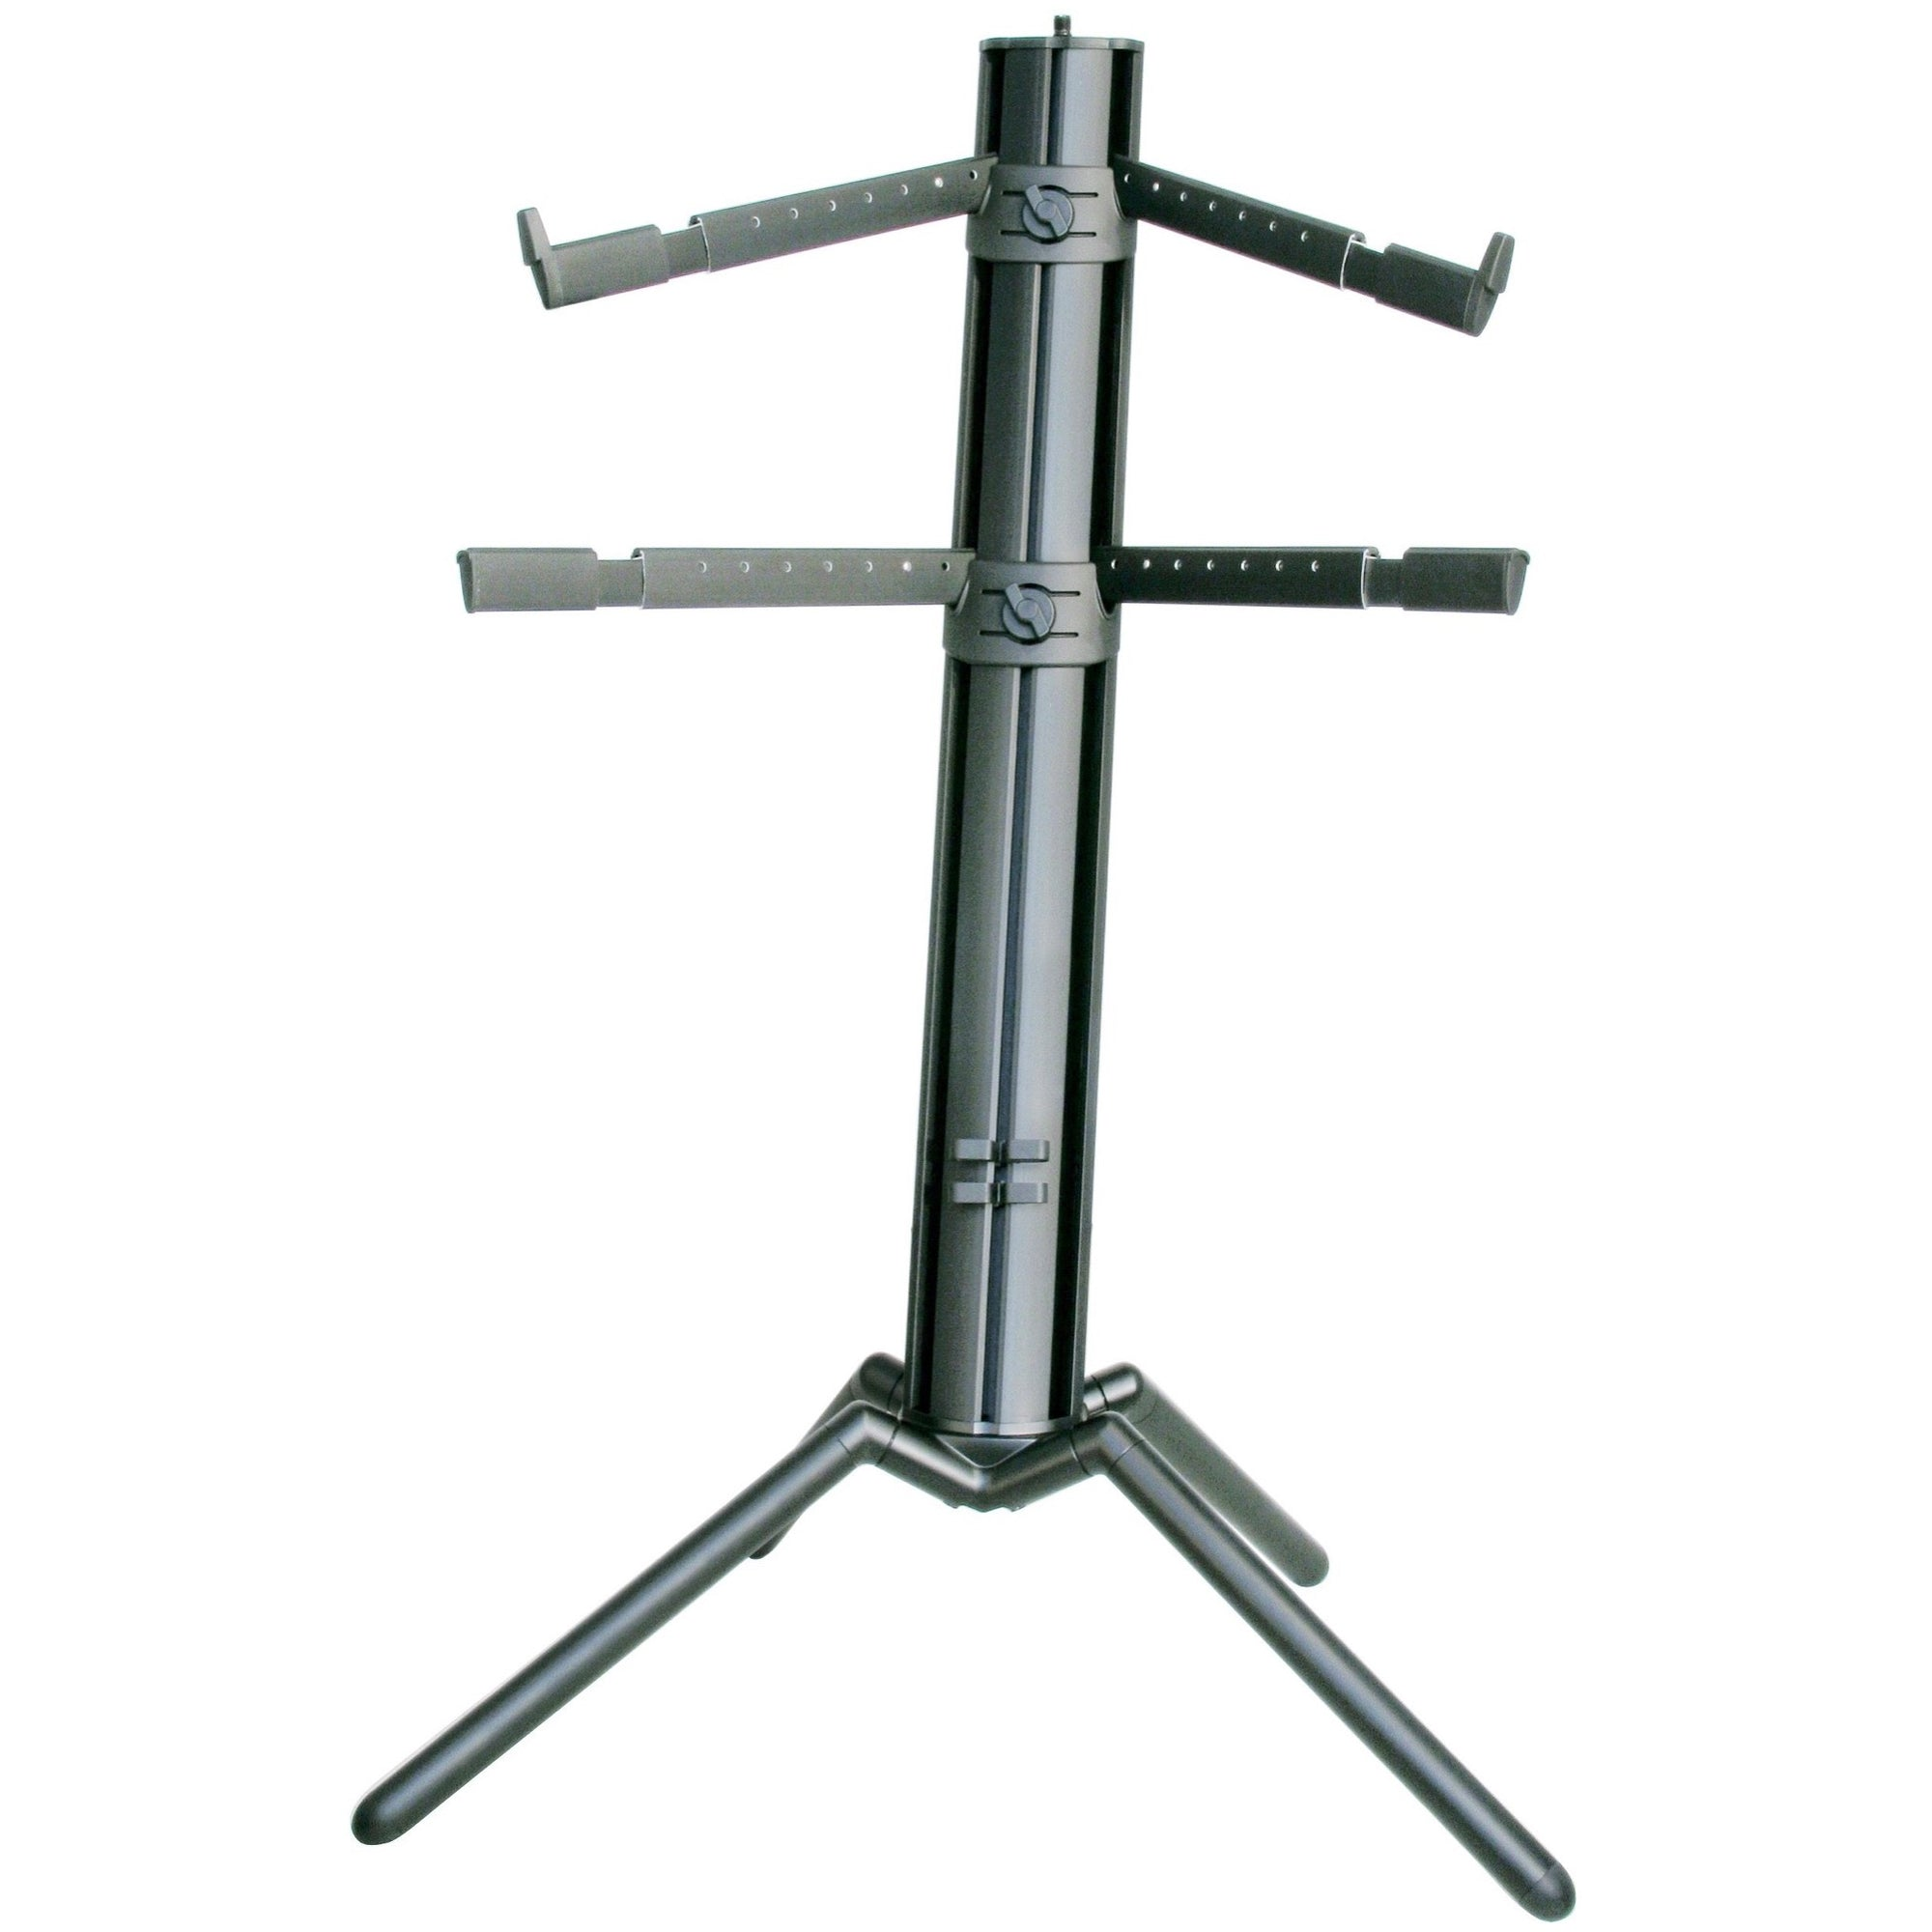 K&M Spider Pro Double-Tier Keyboard Stand, Black